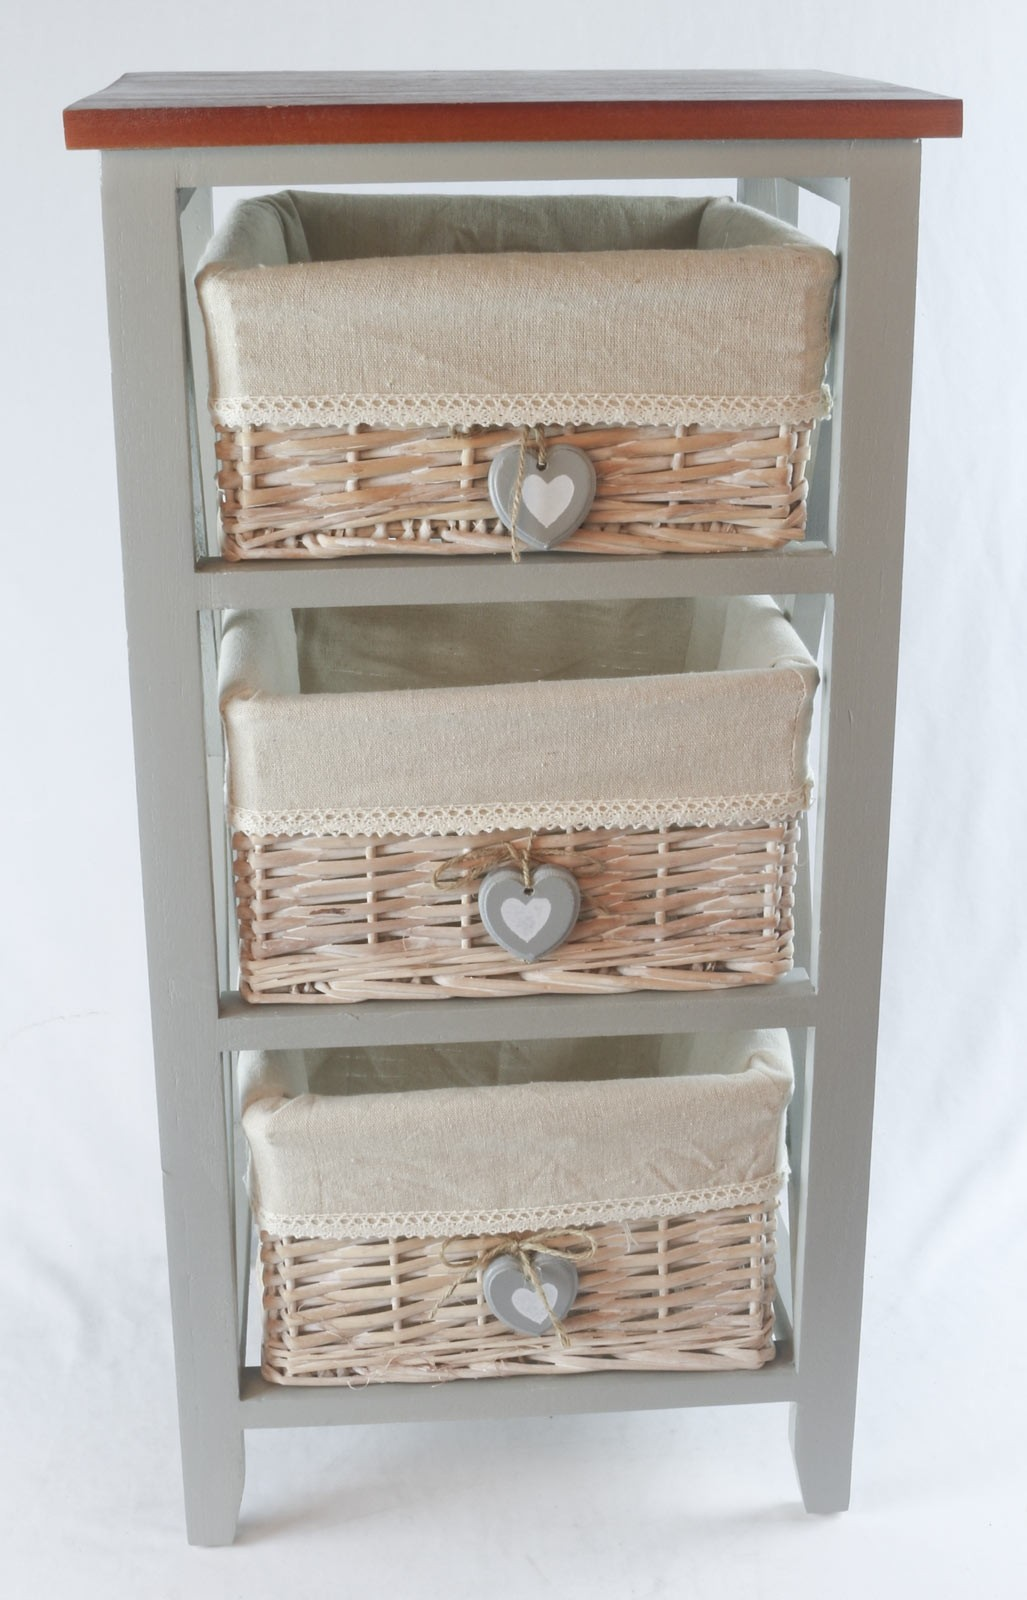 3 Basket Chest with hearts